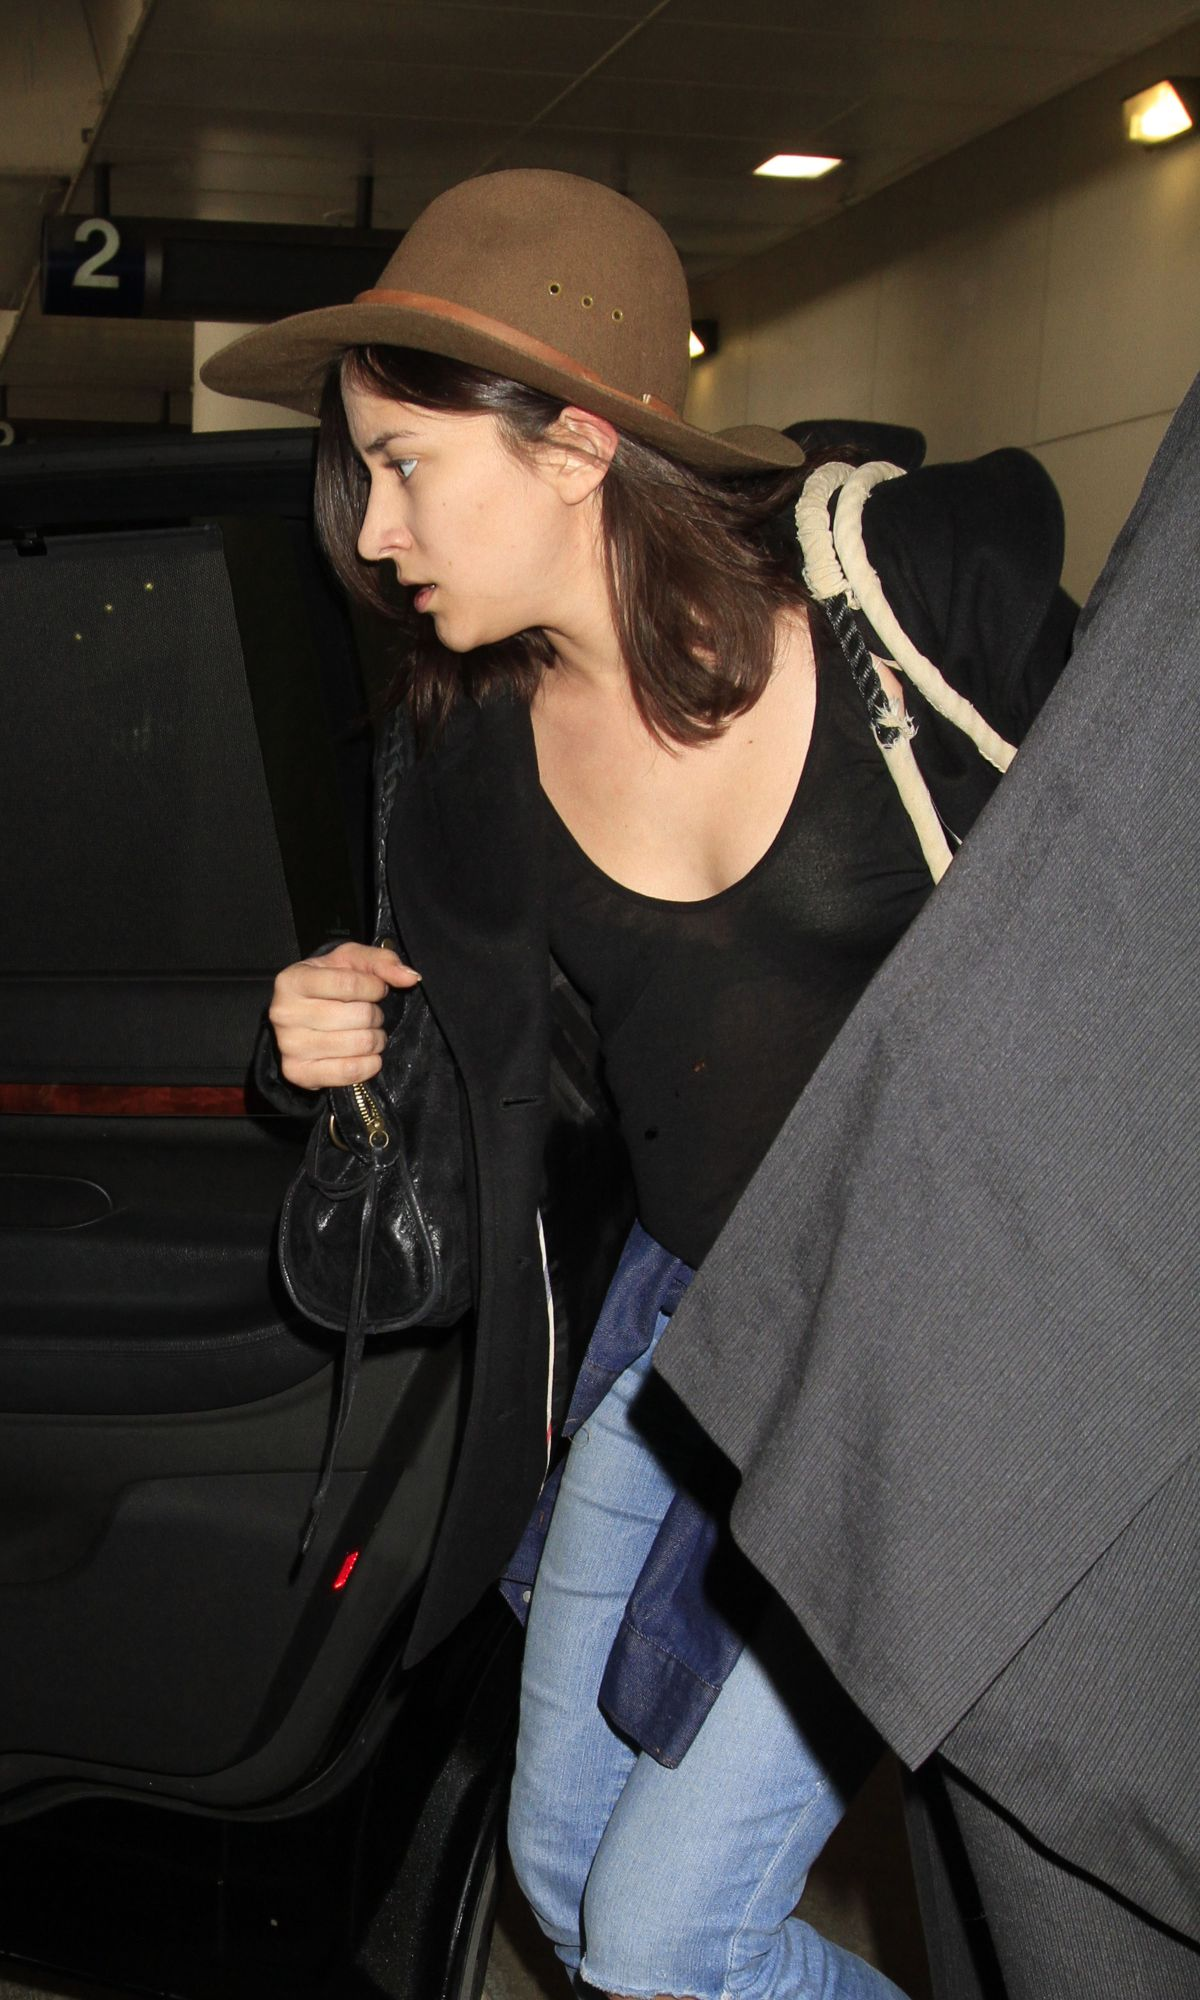 ZELDA WILLIAMS at LAX Airport in Los Angeles 02/05/2016